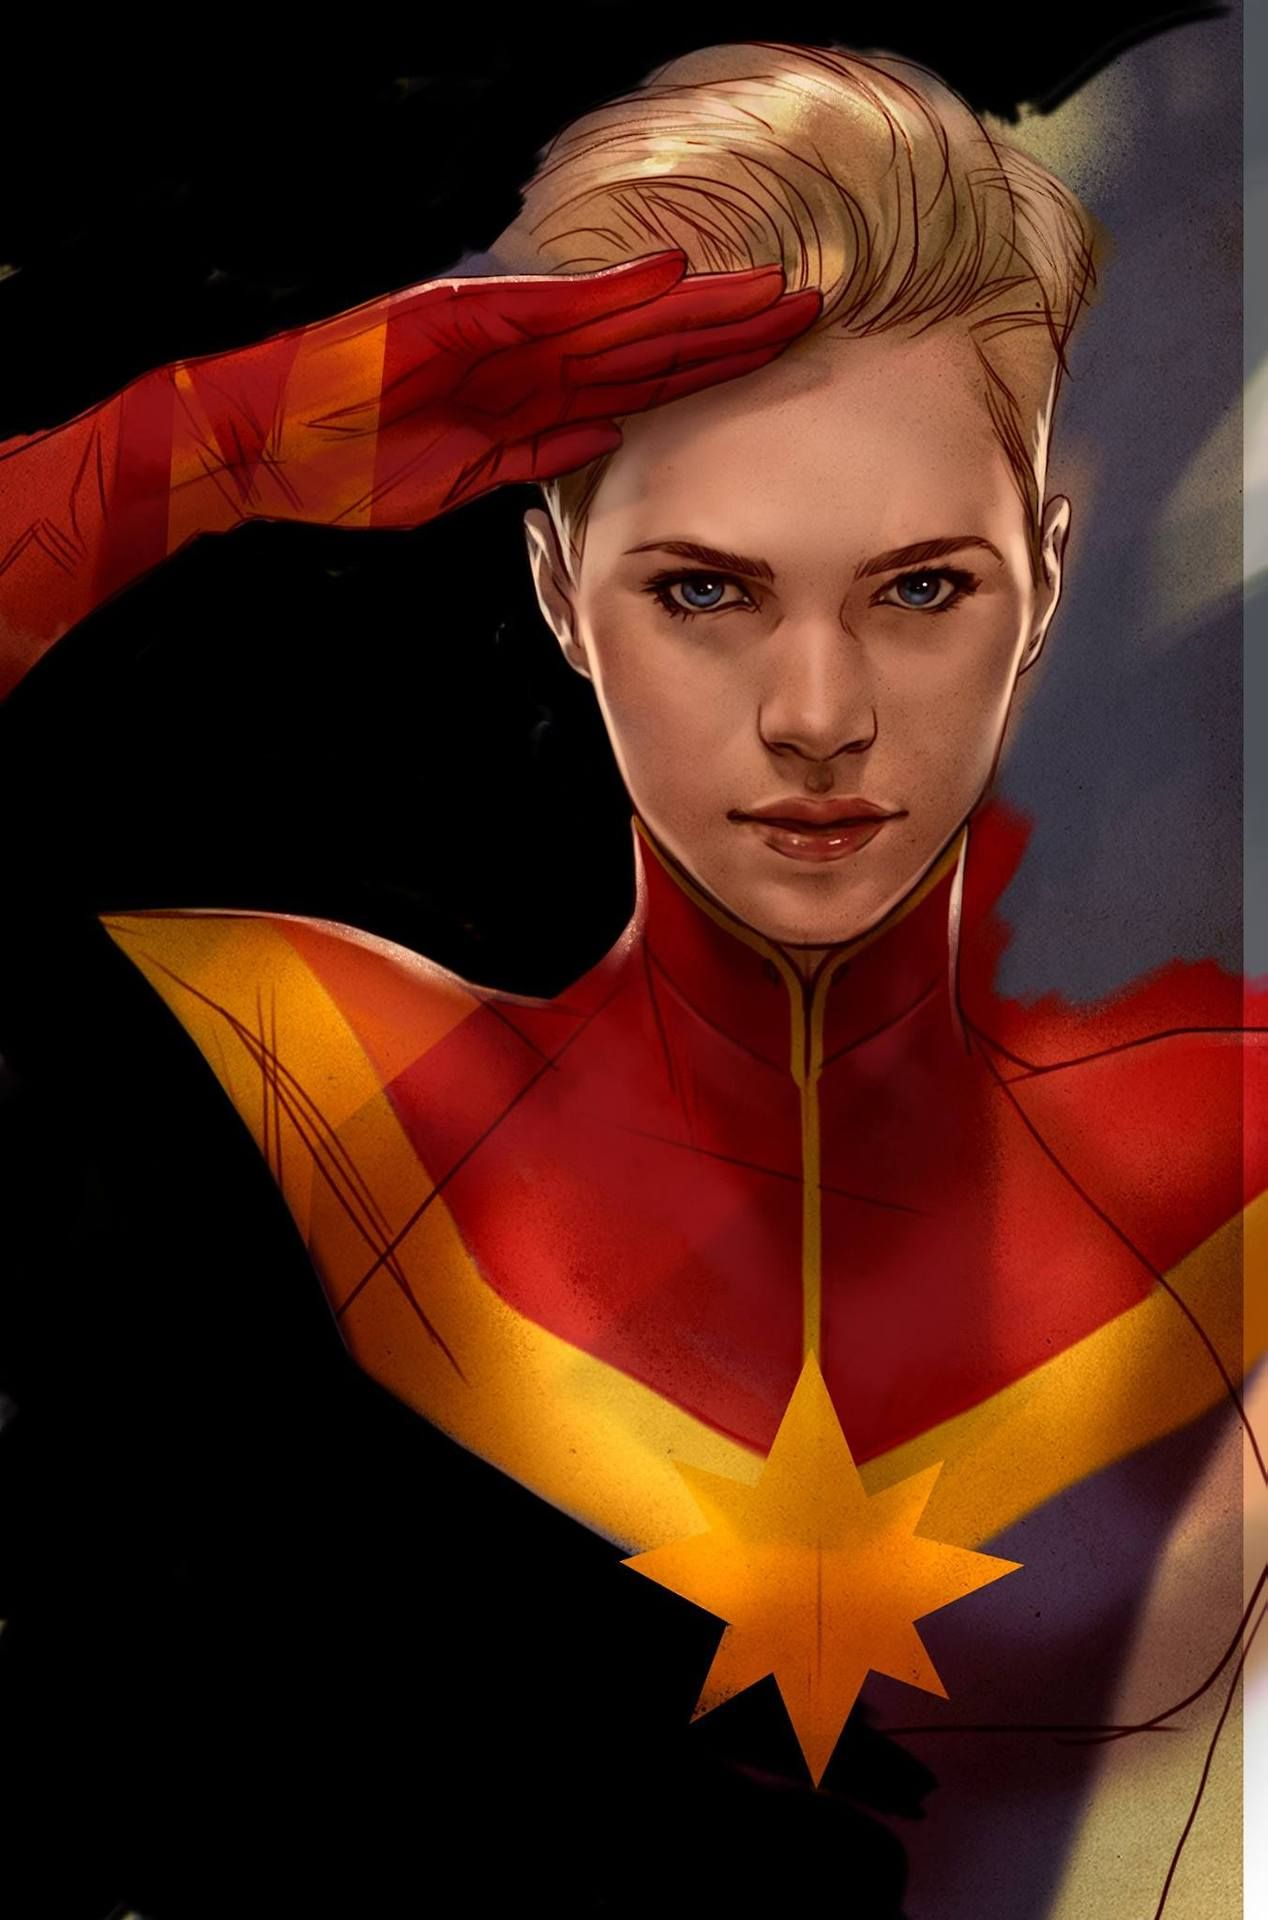 the actress who will play captain marvel (brie larson) and